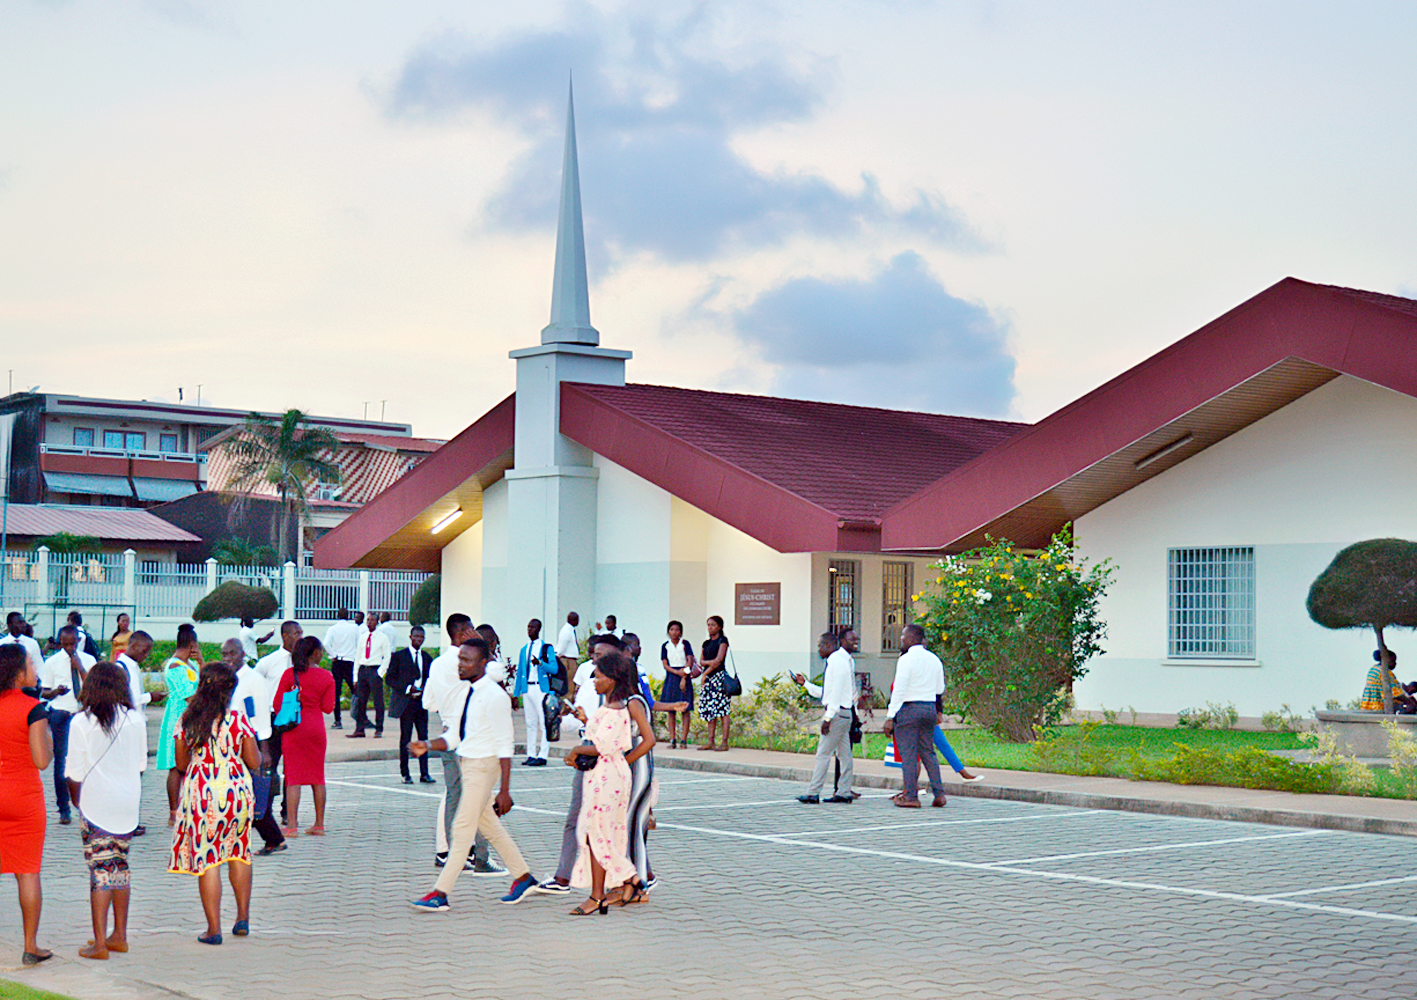 Church members stand outside the meetinghouse in Abidjan, Cote D'Ivoire. Elder Neil L. Andersen and Elder Ulisses Soares traveled throughout the Africa West Area from May 19-28, 2018.